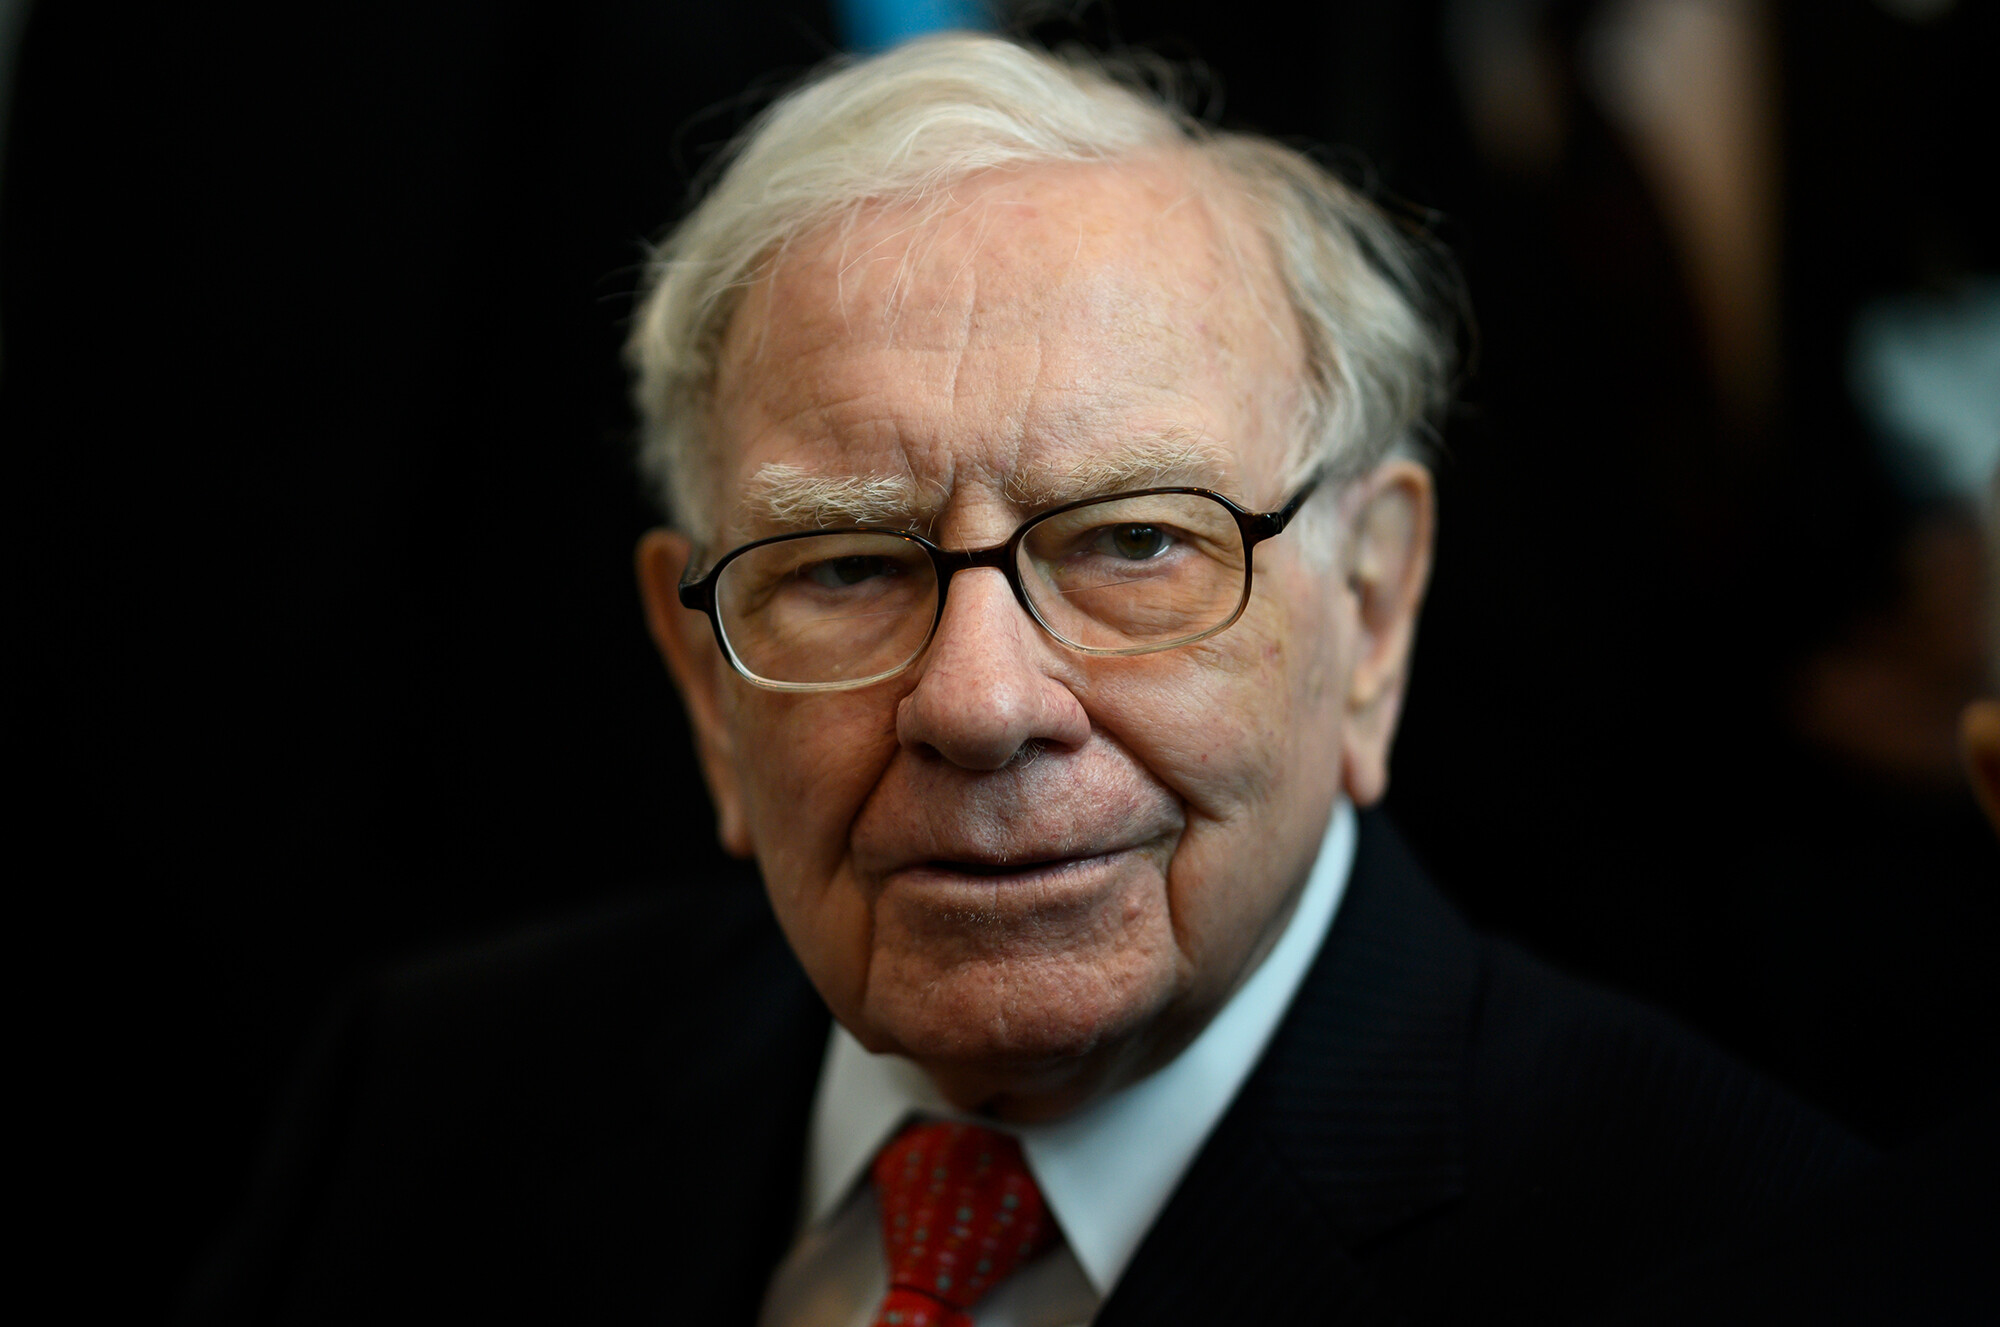 <i>Johannes Eisele/AFP/Getty Images</i><br/>Warren Buffett's Berkshire Hathaway announced it was scrapping plans to buy a big natural gas pipeline for more than $1.7 billion because of antitrust concerns.